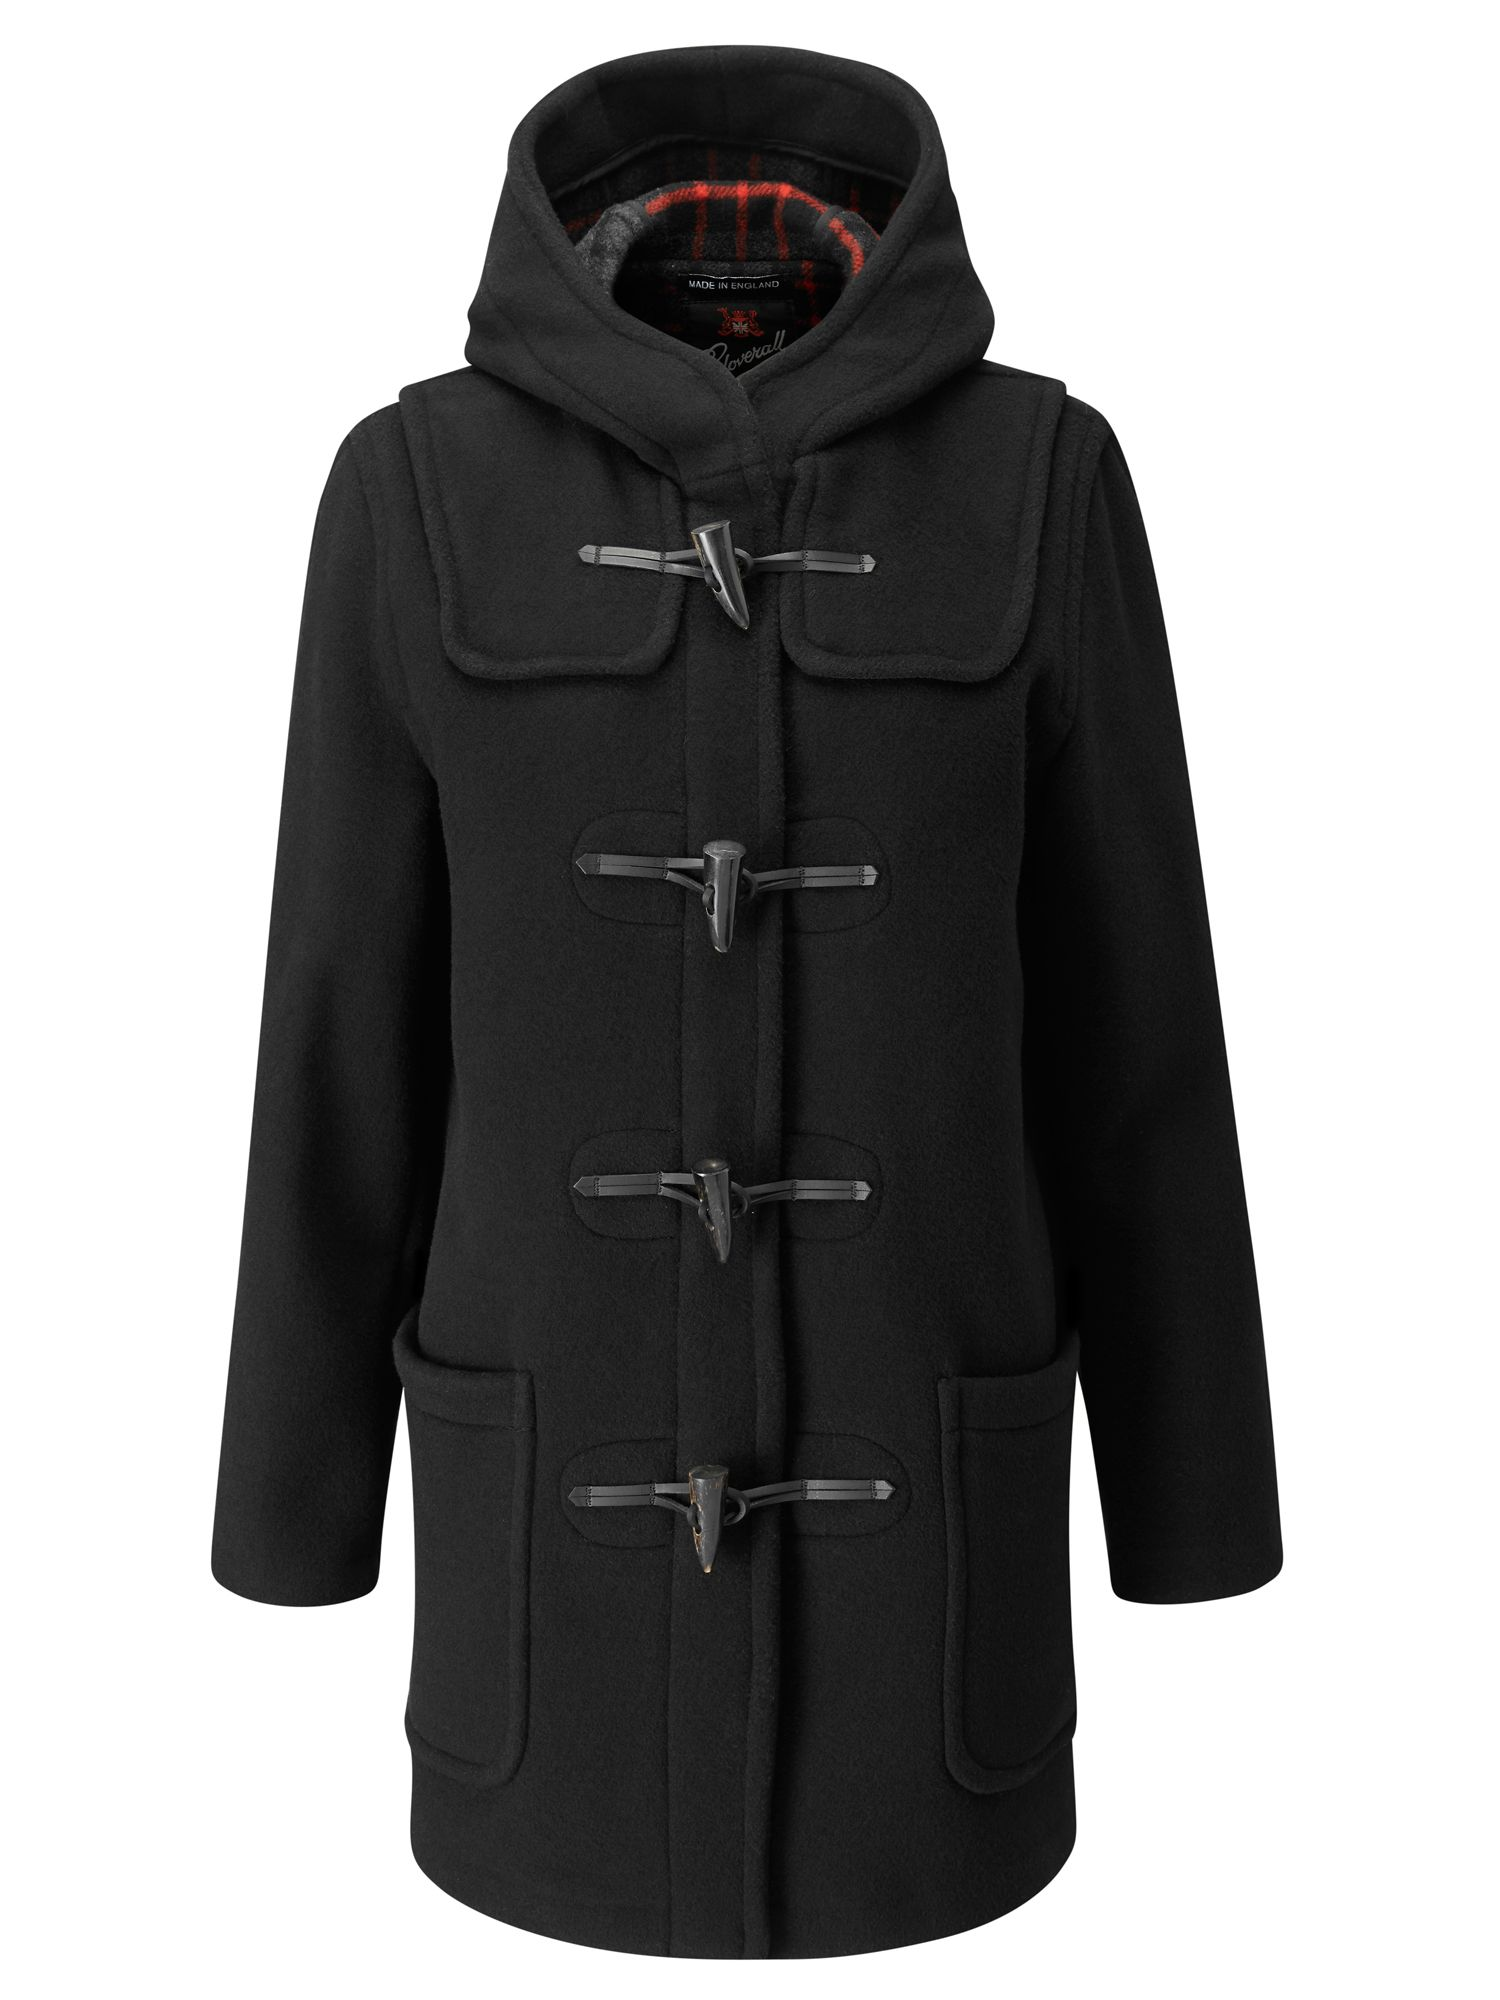 Gloverall Mid Length Original Fit Duffle Coat - House of Fraser